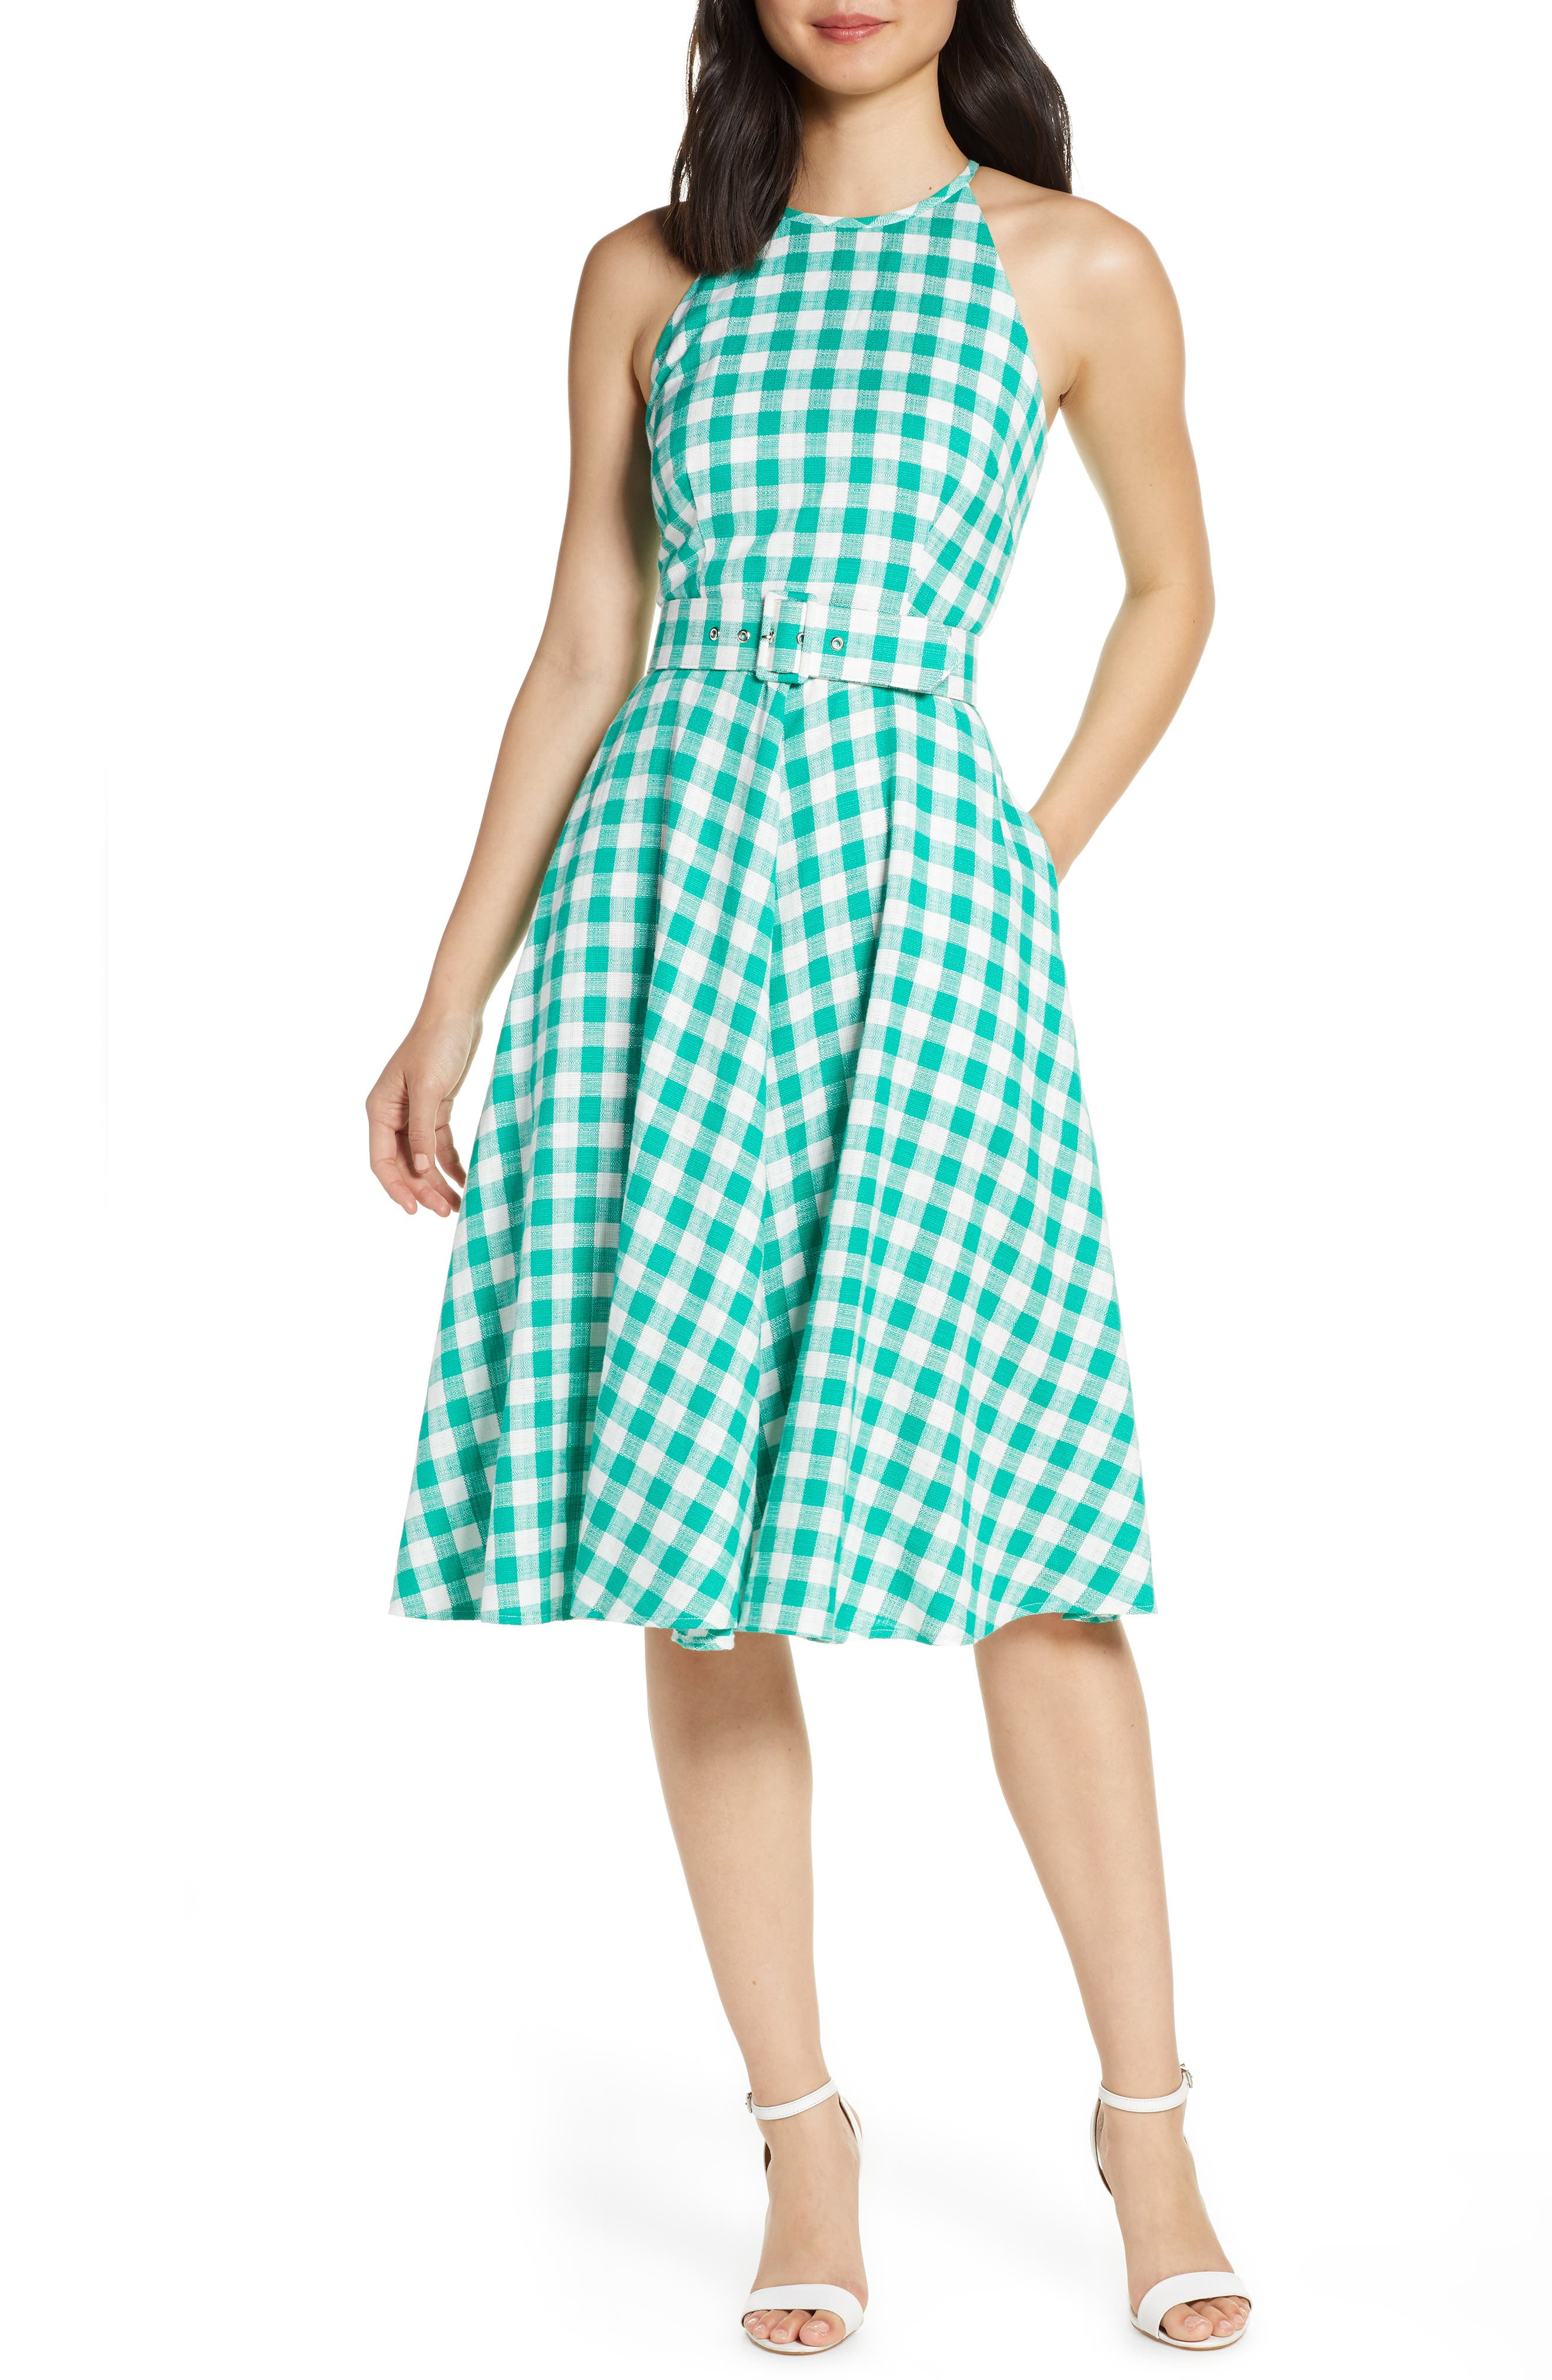 Fifties Dresses : 1950s Style Swing to Wiggle Dresses Womens Eliza J Halter Neck Gingham Fit  Flare Dress $82.80 AT vintagedancer.com